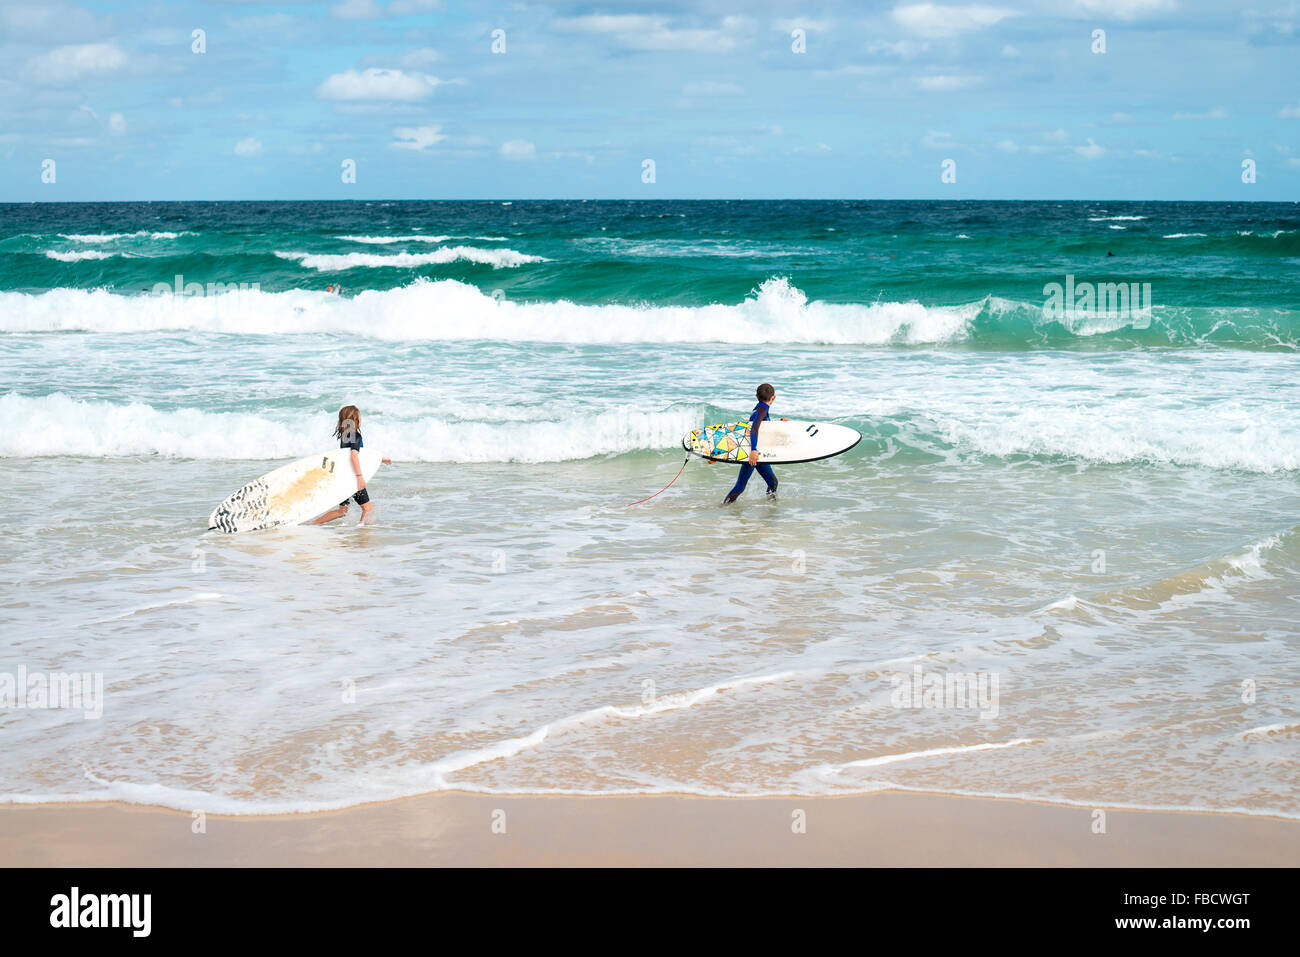 Surfing Waves Travel Vacations Stock Photos  U0026 Surfing Waves Travel Vacations Stock Images